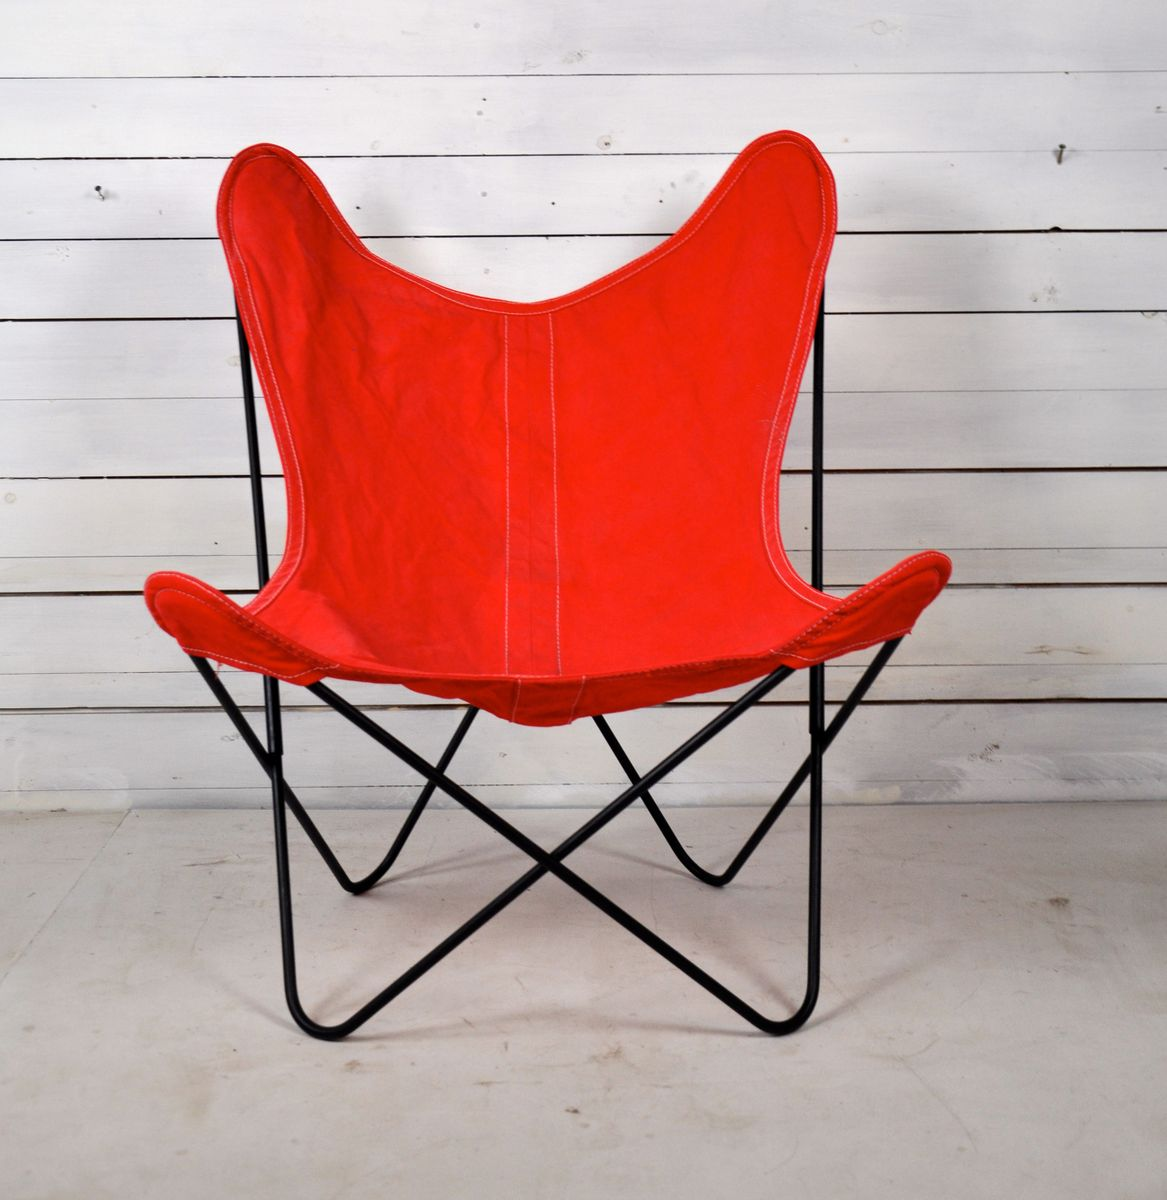 Butterfly Chair Knoll Knoll International Butterfly Chair New Image Butterfly